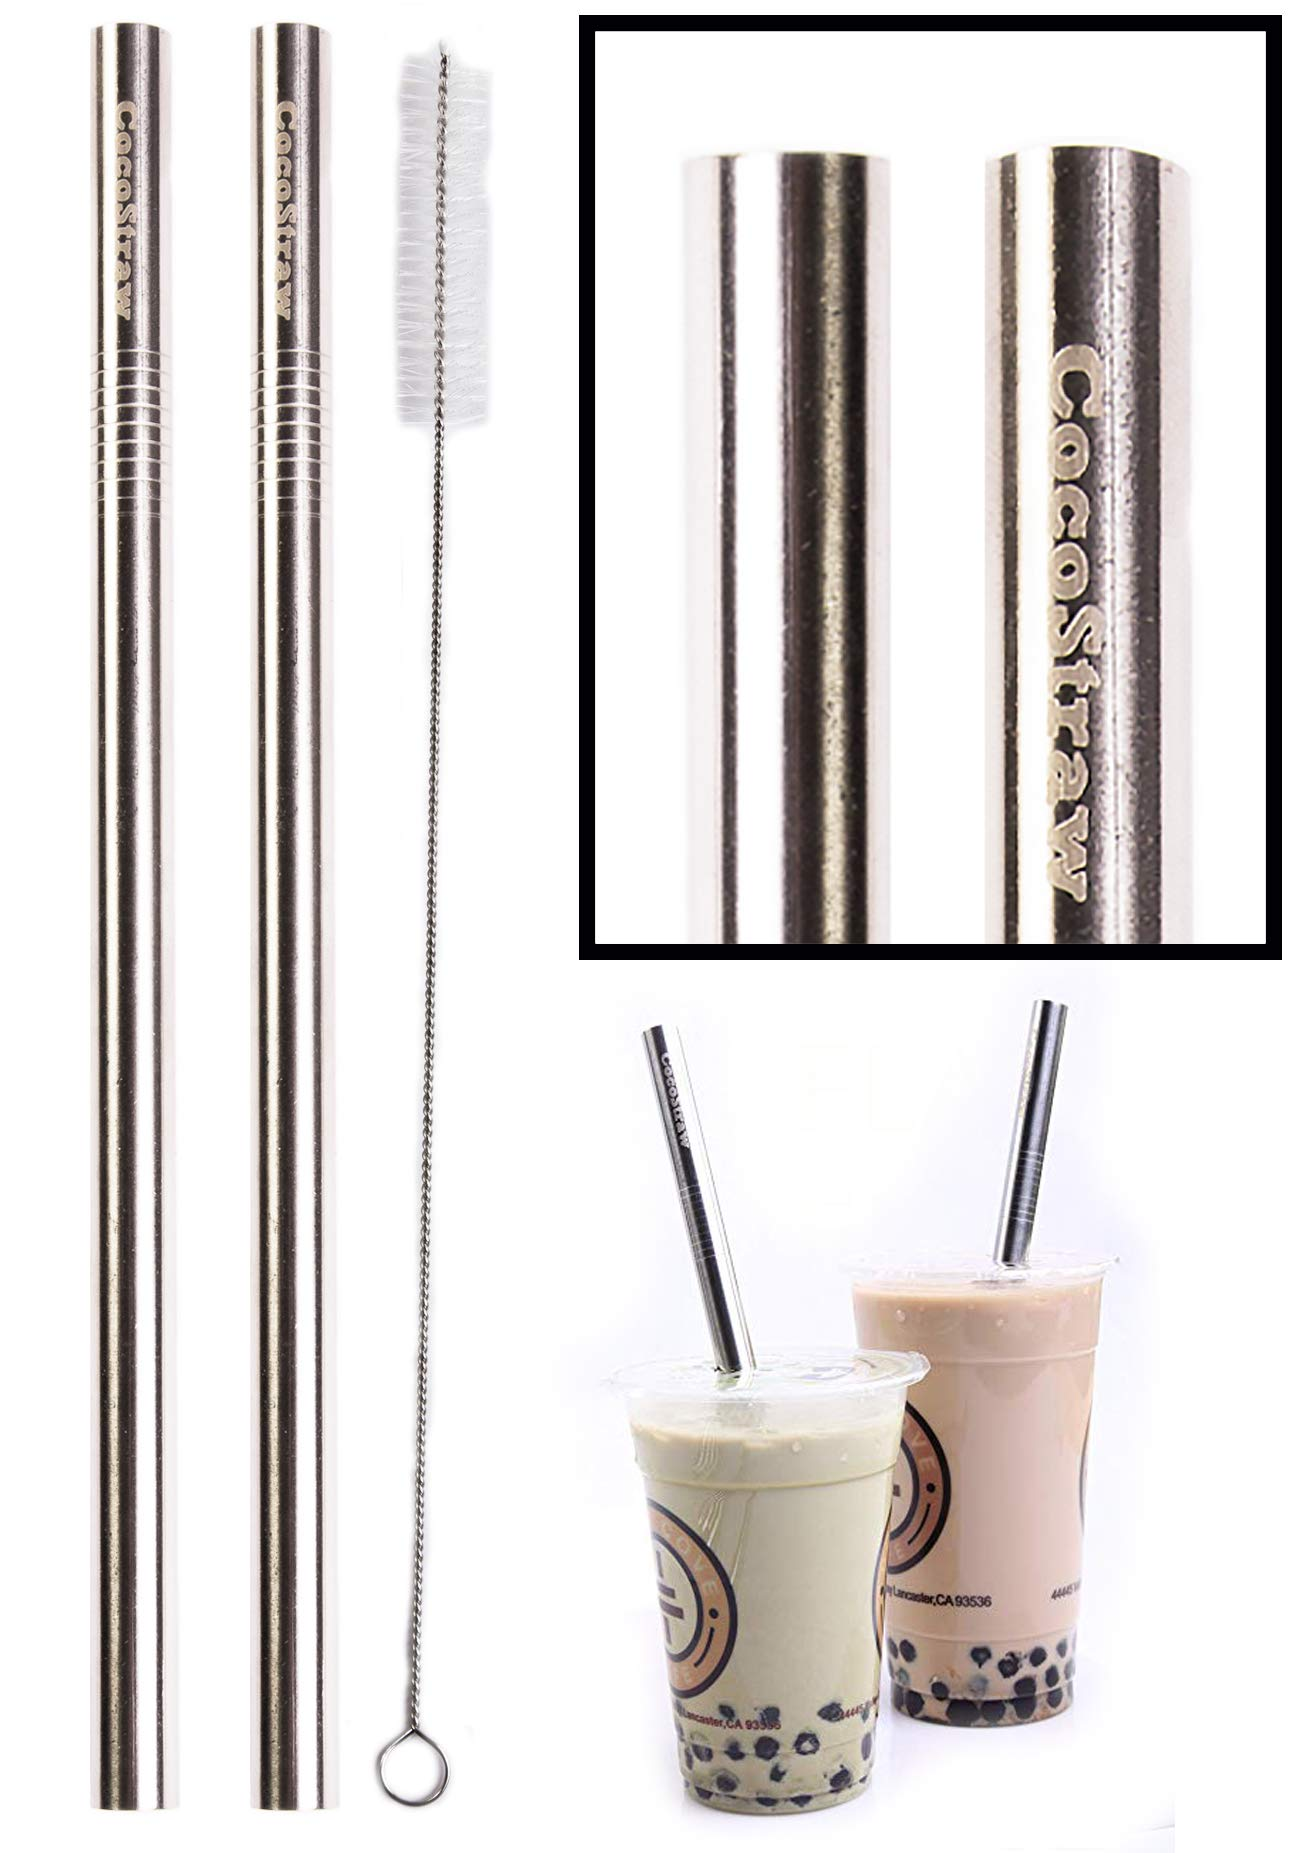 "2 BOBA Straw Stainless Steel Extra Wide 1/2"" x 9.5"" Long Tapioca Pearl Bubble Tea Thick FAT - CocoStraw Brand"